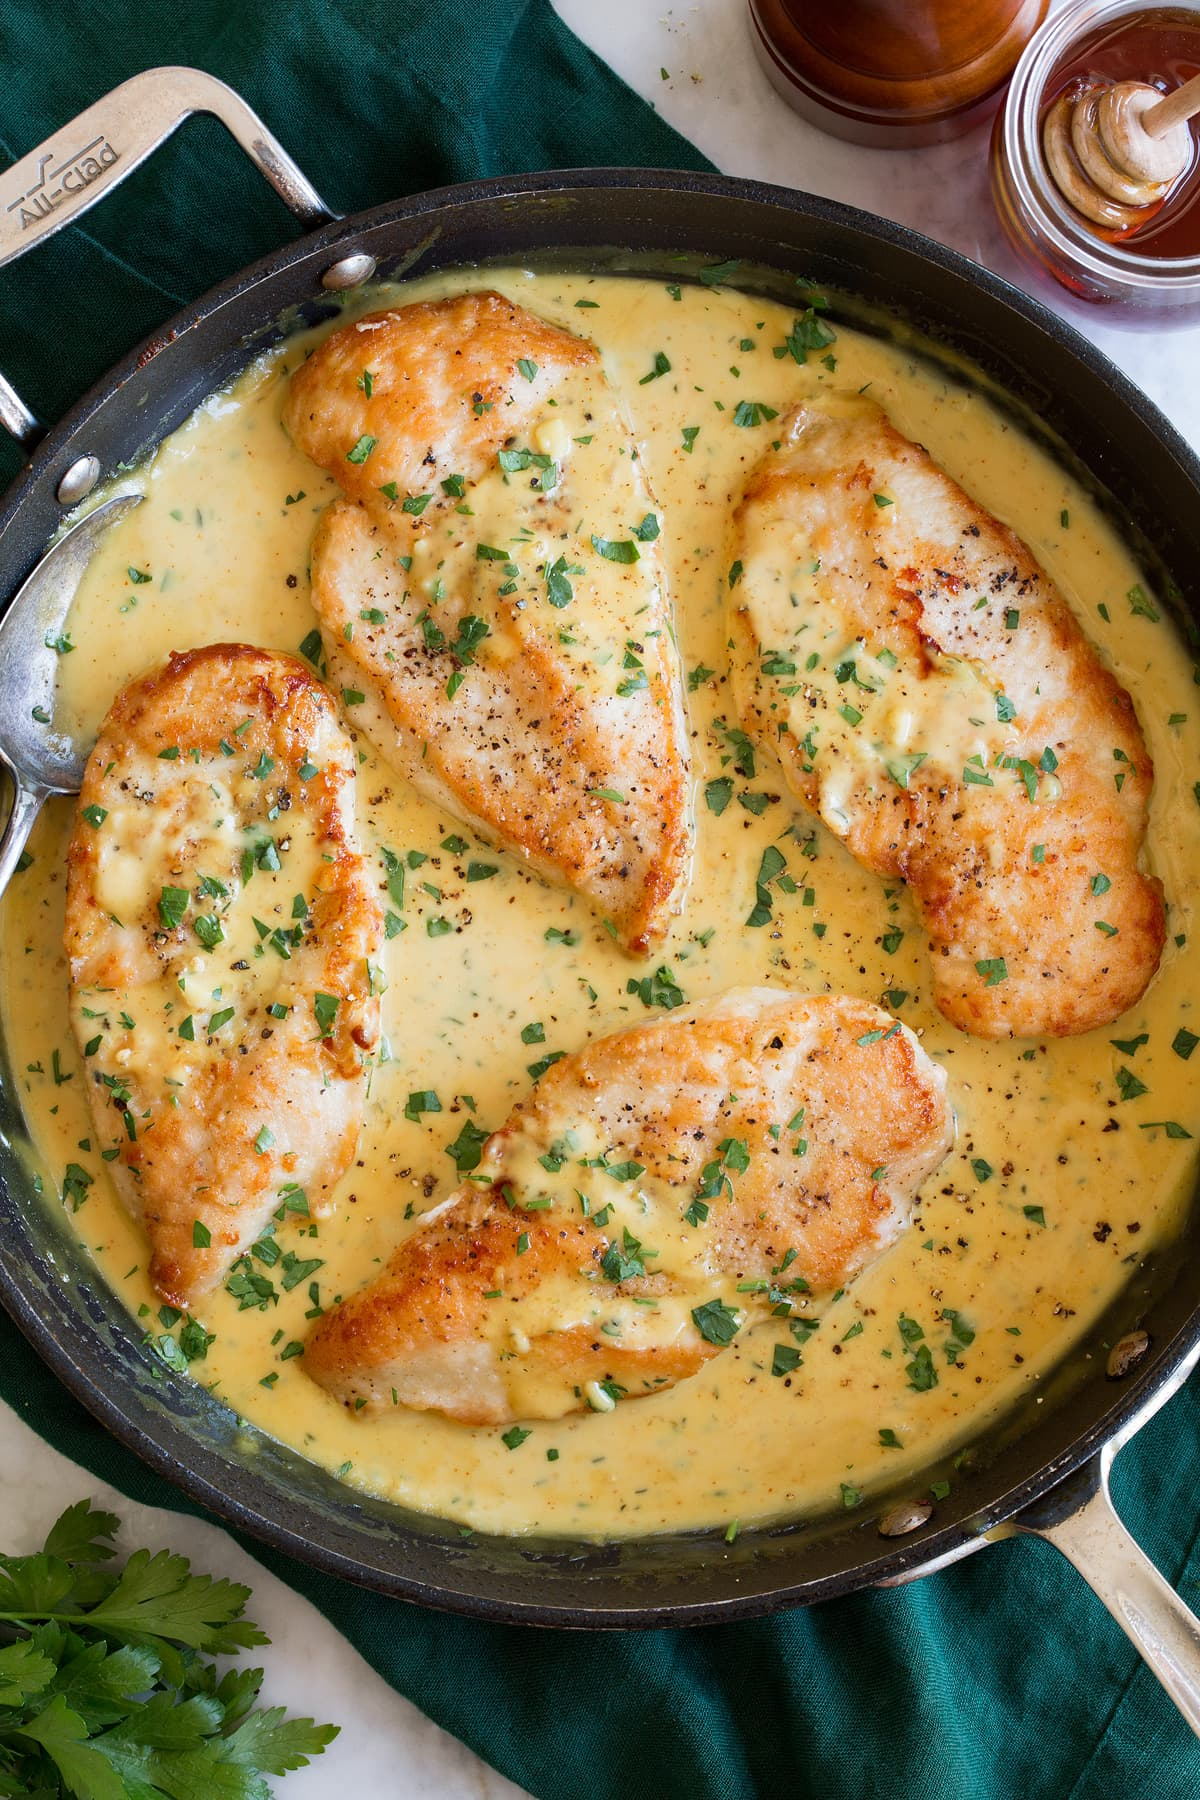 Four chicken breasts in honey mustard sauce in a large black skillet.